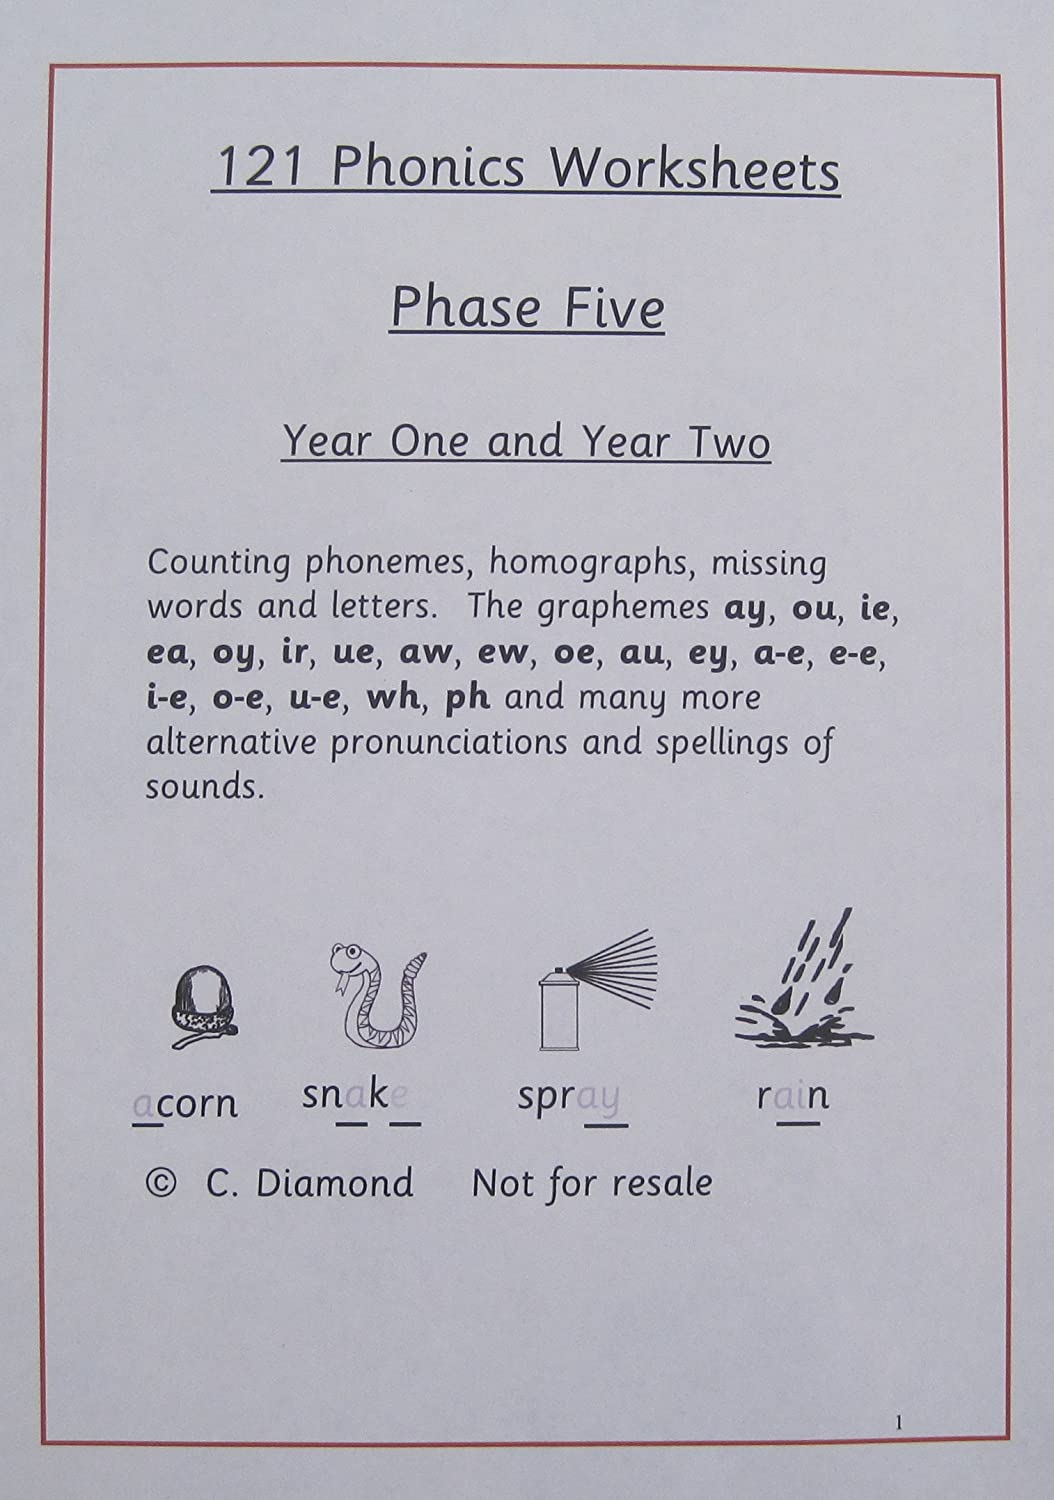 121 phase 5 phonics worksheets for ages 5 7 years pdf file to print - Worksheets To Print Out